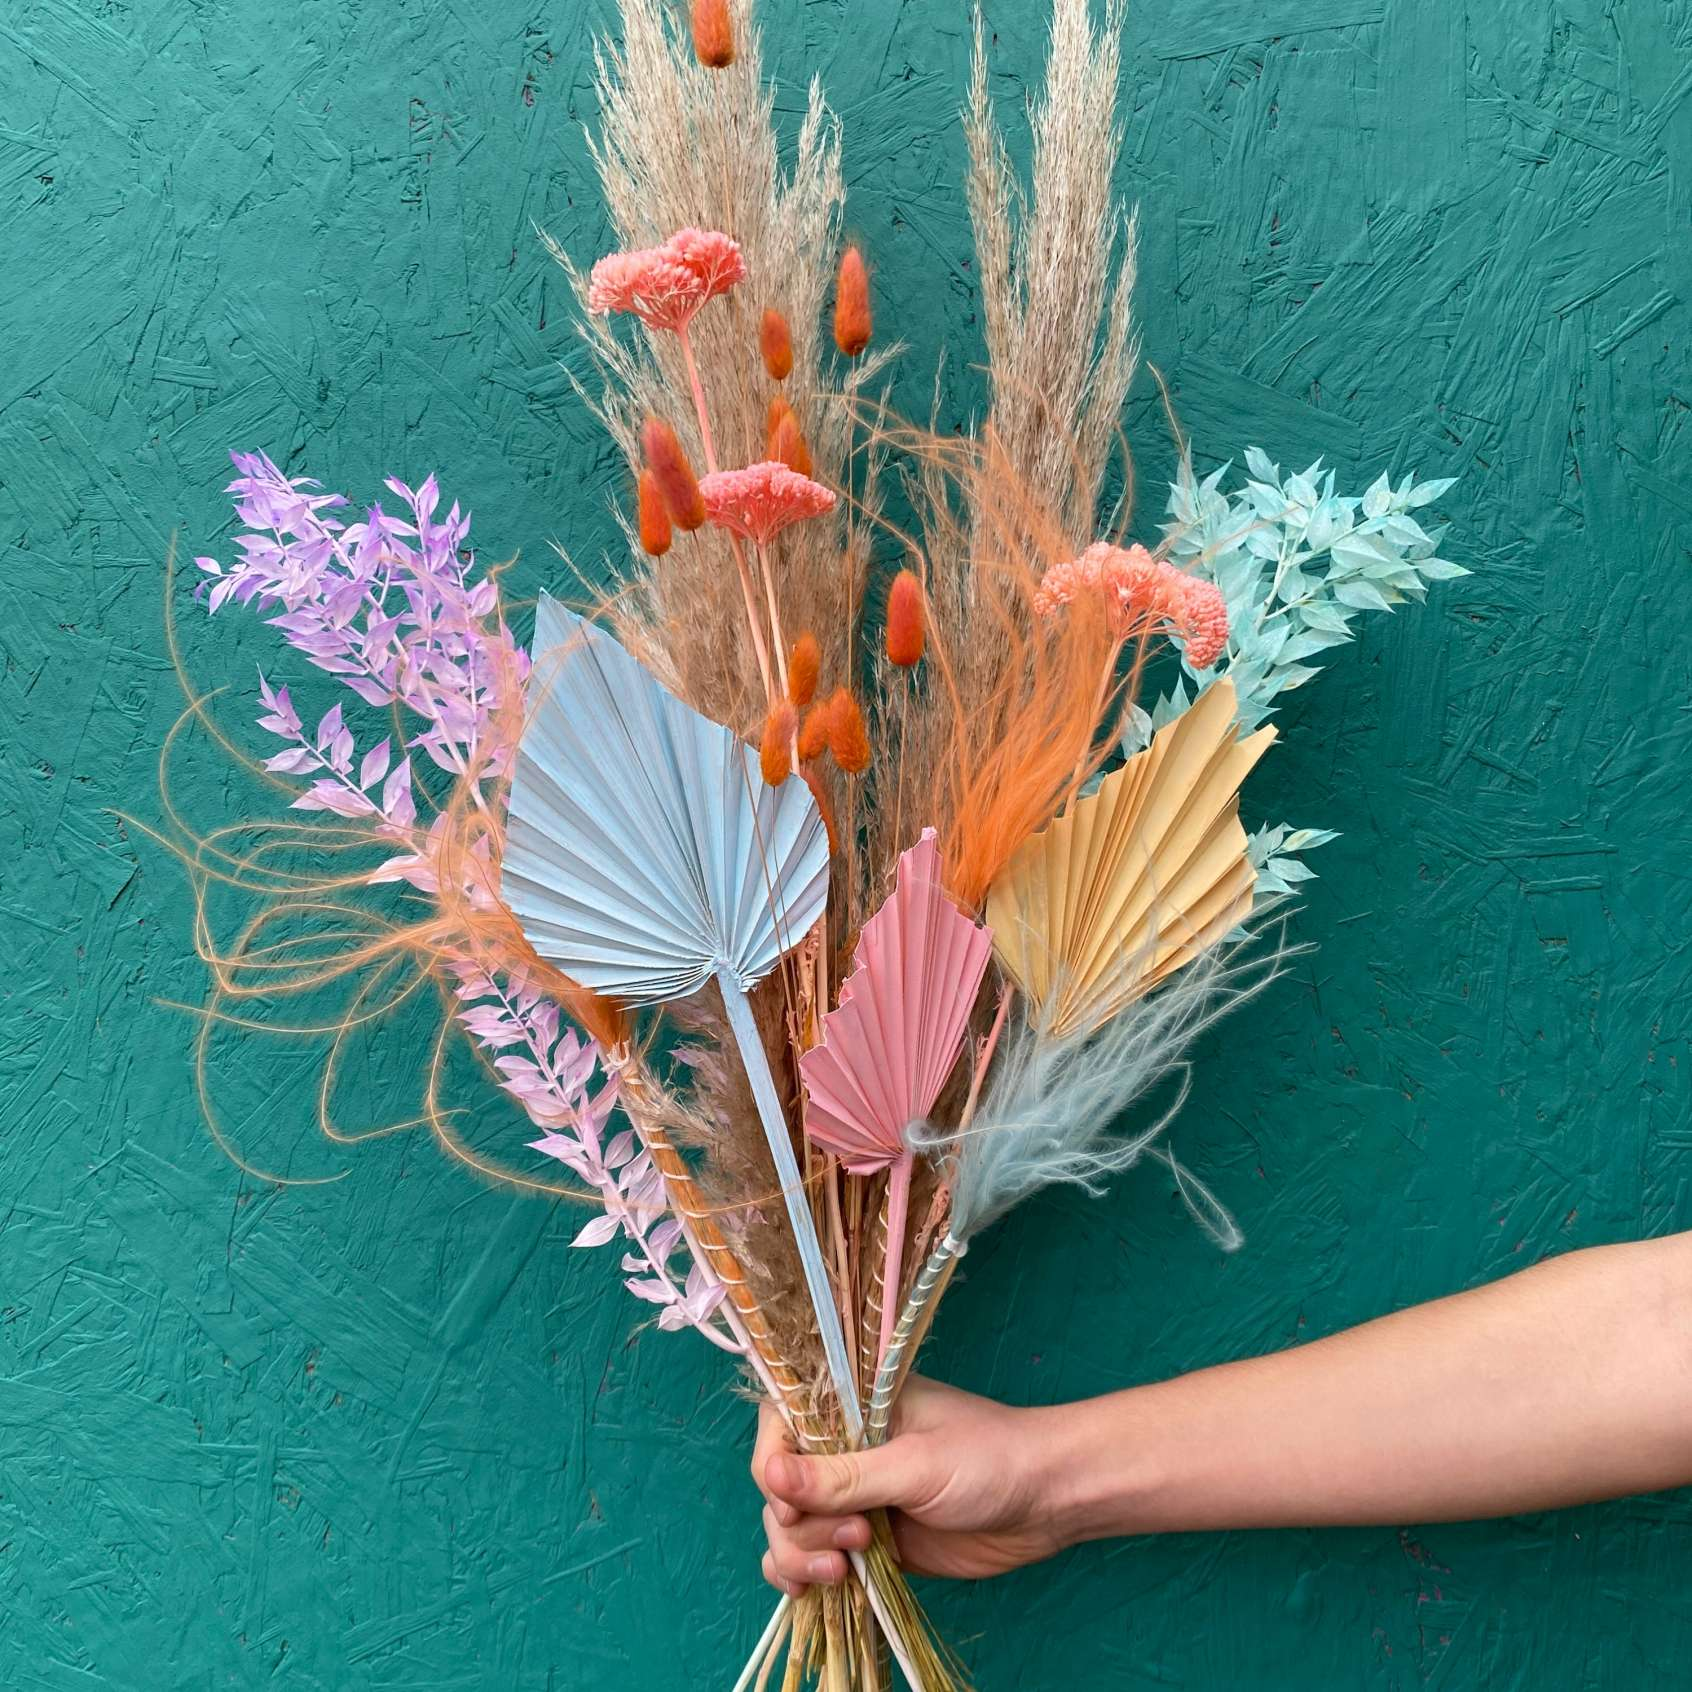 Pastel coloured dried flowers